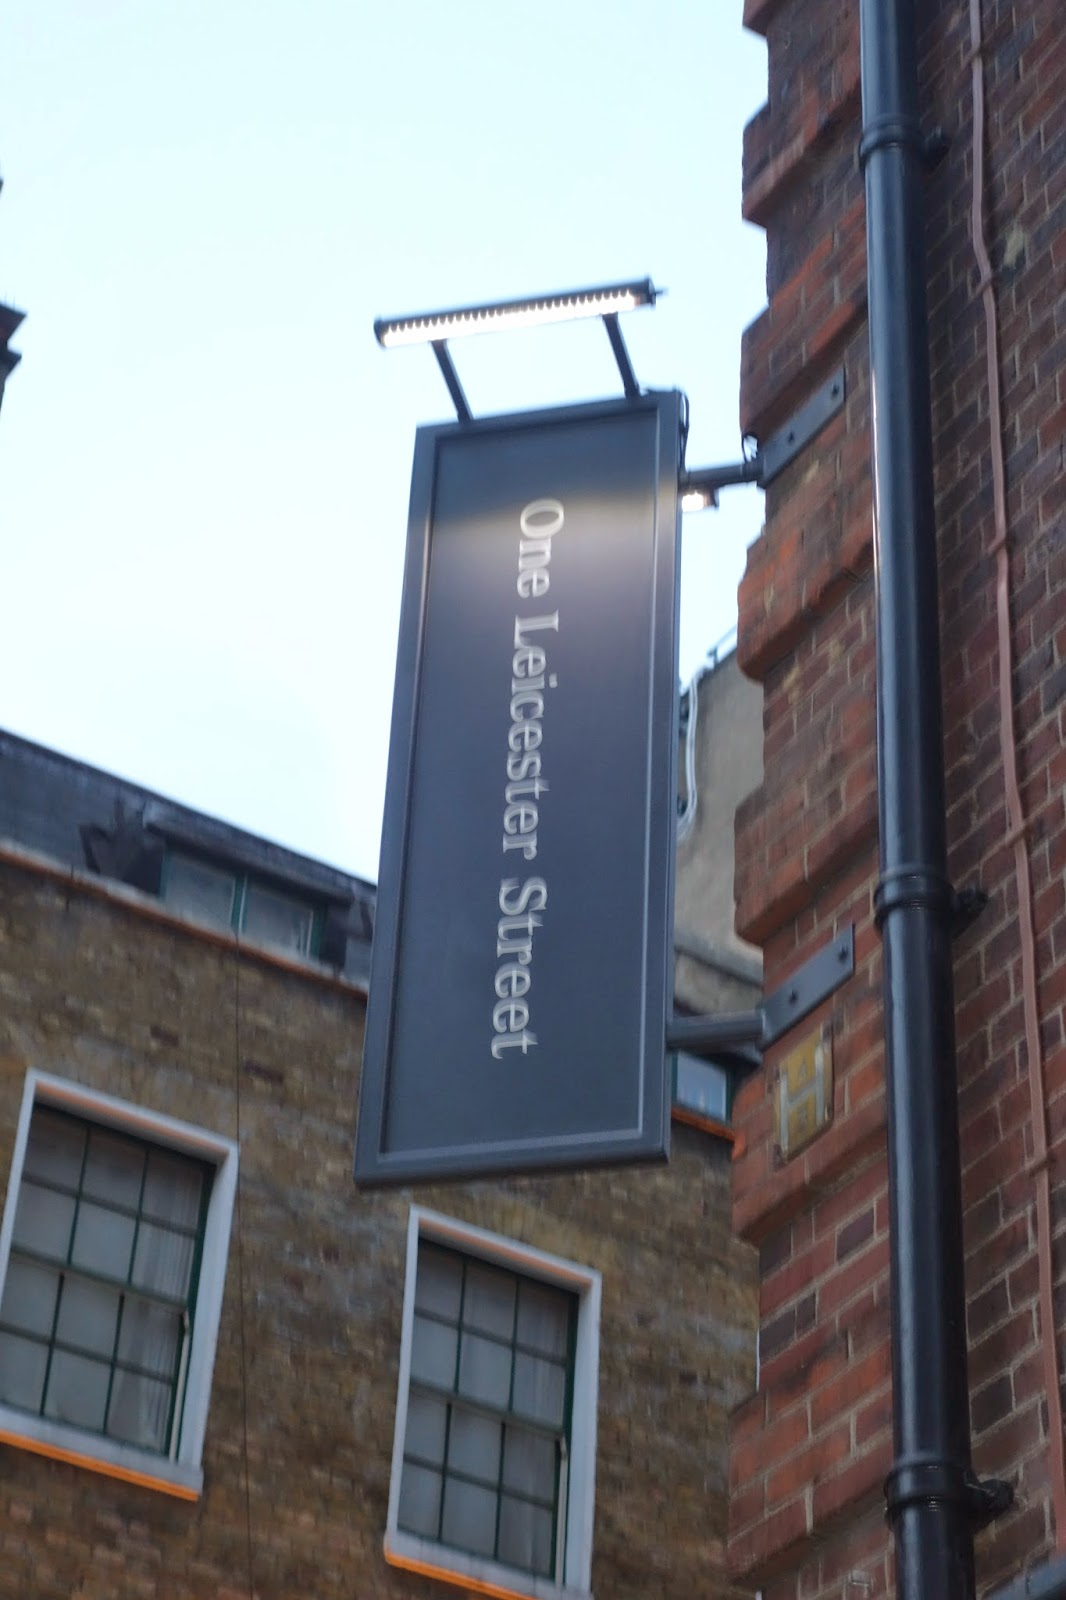 One Leicester street sign